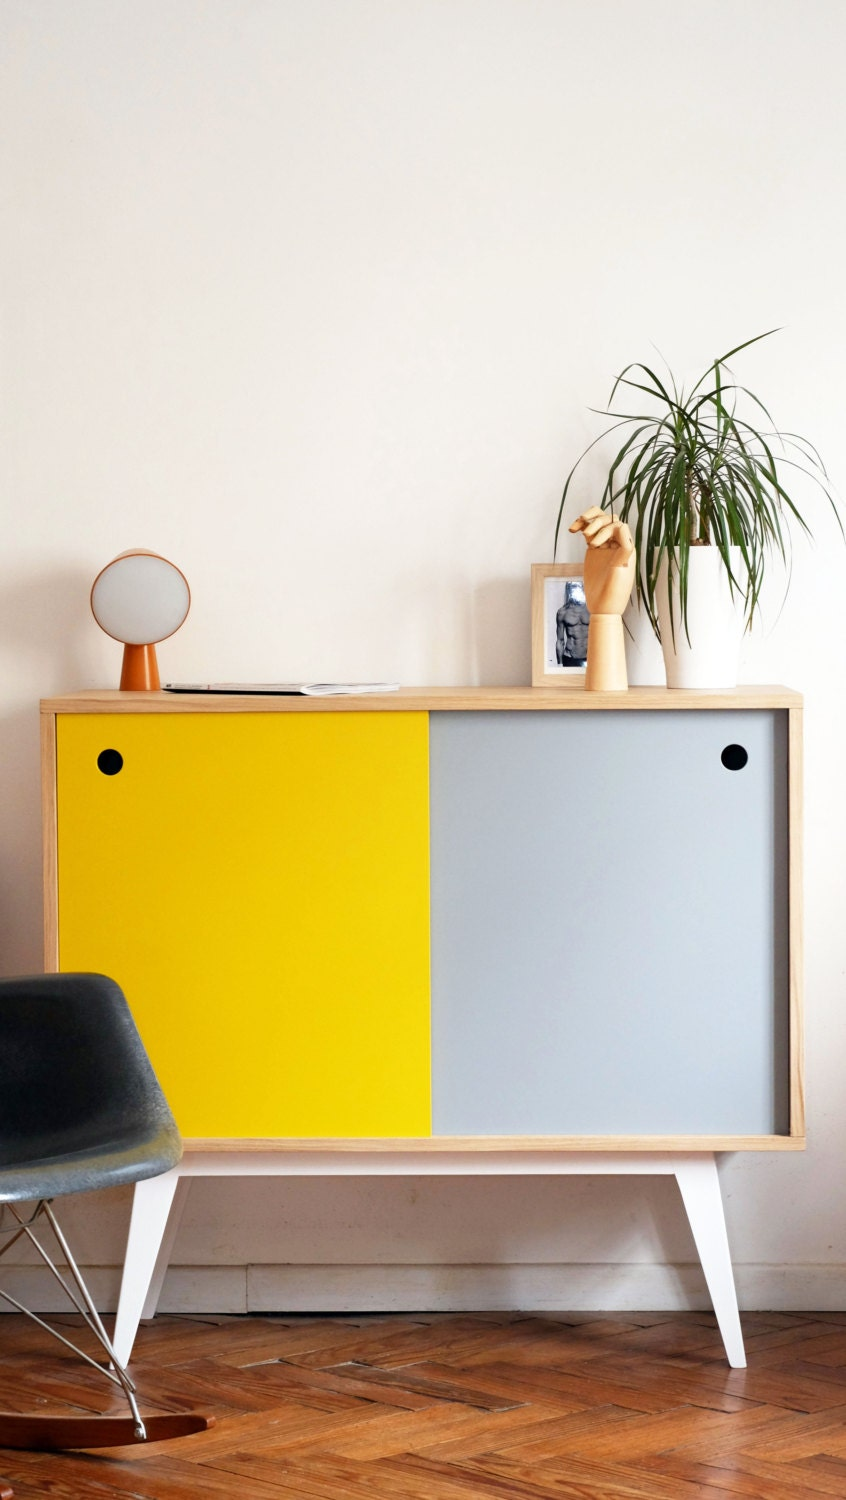 petit bahut scandinave jaune et gris clair. Black Bedroom Furniture Sets. Home Design Ideas